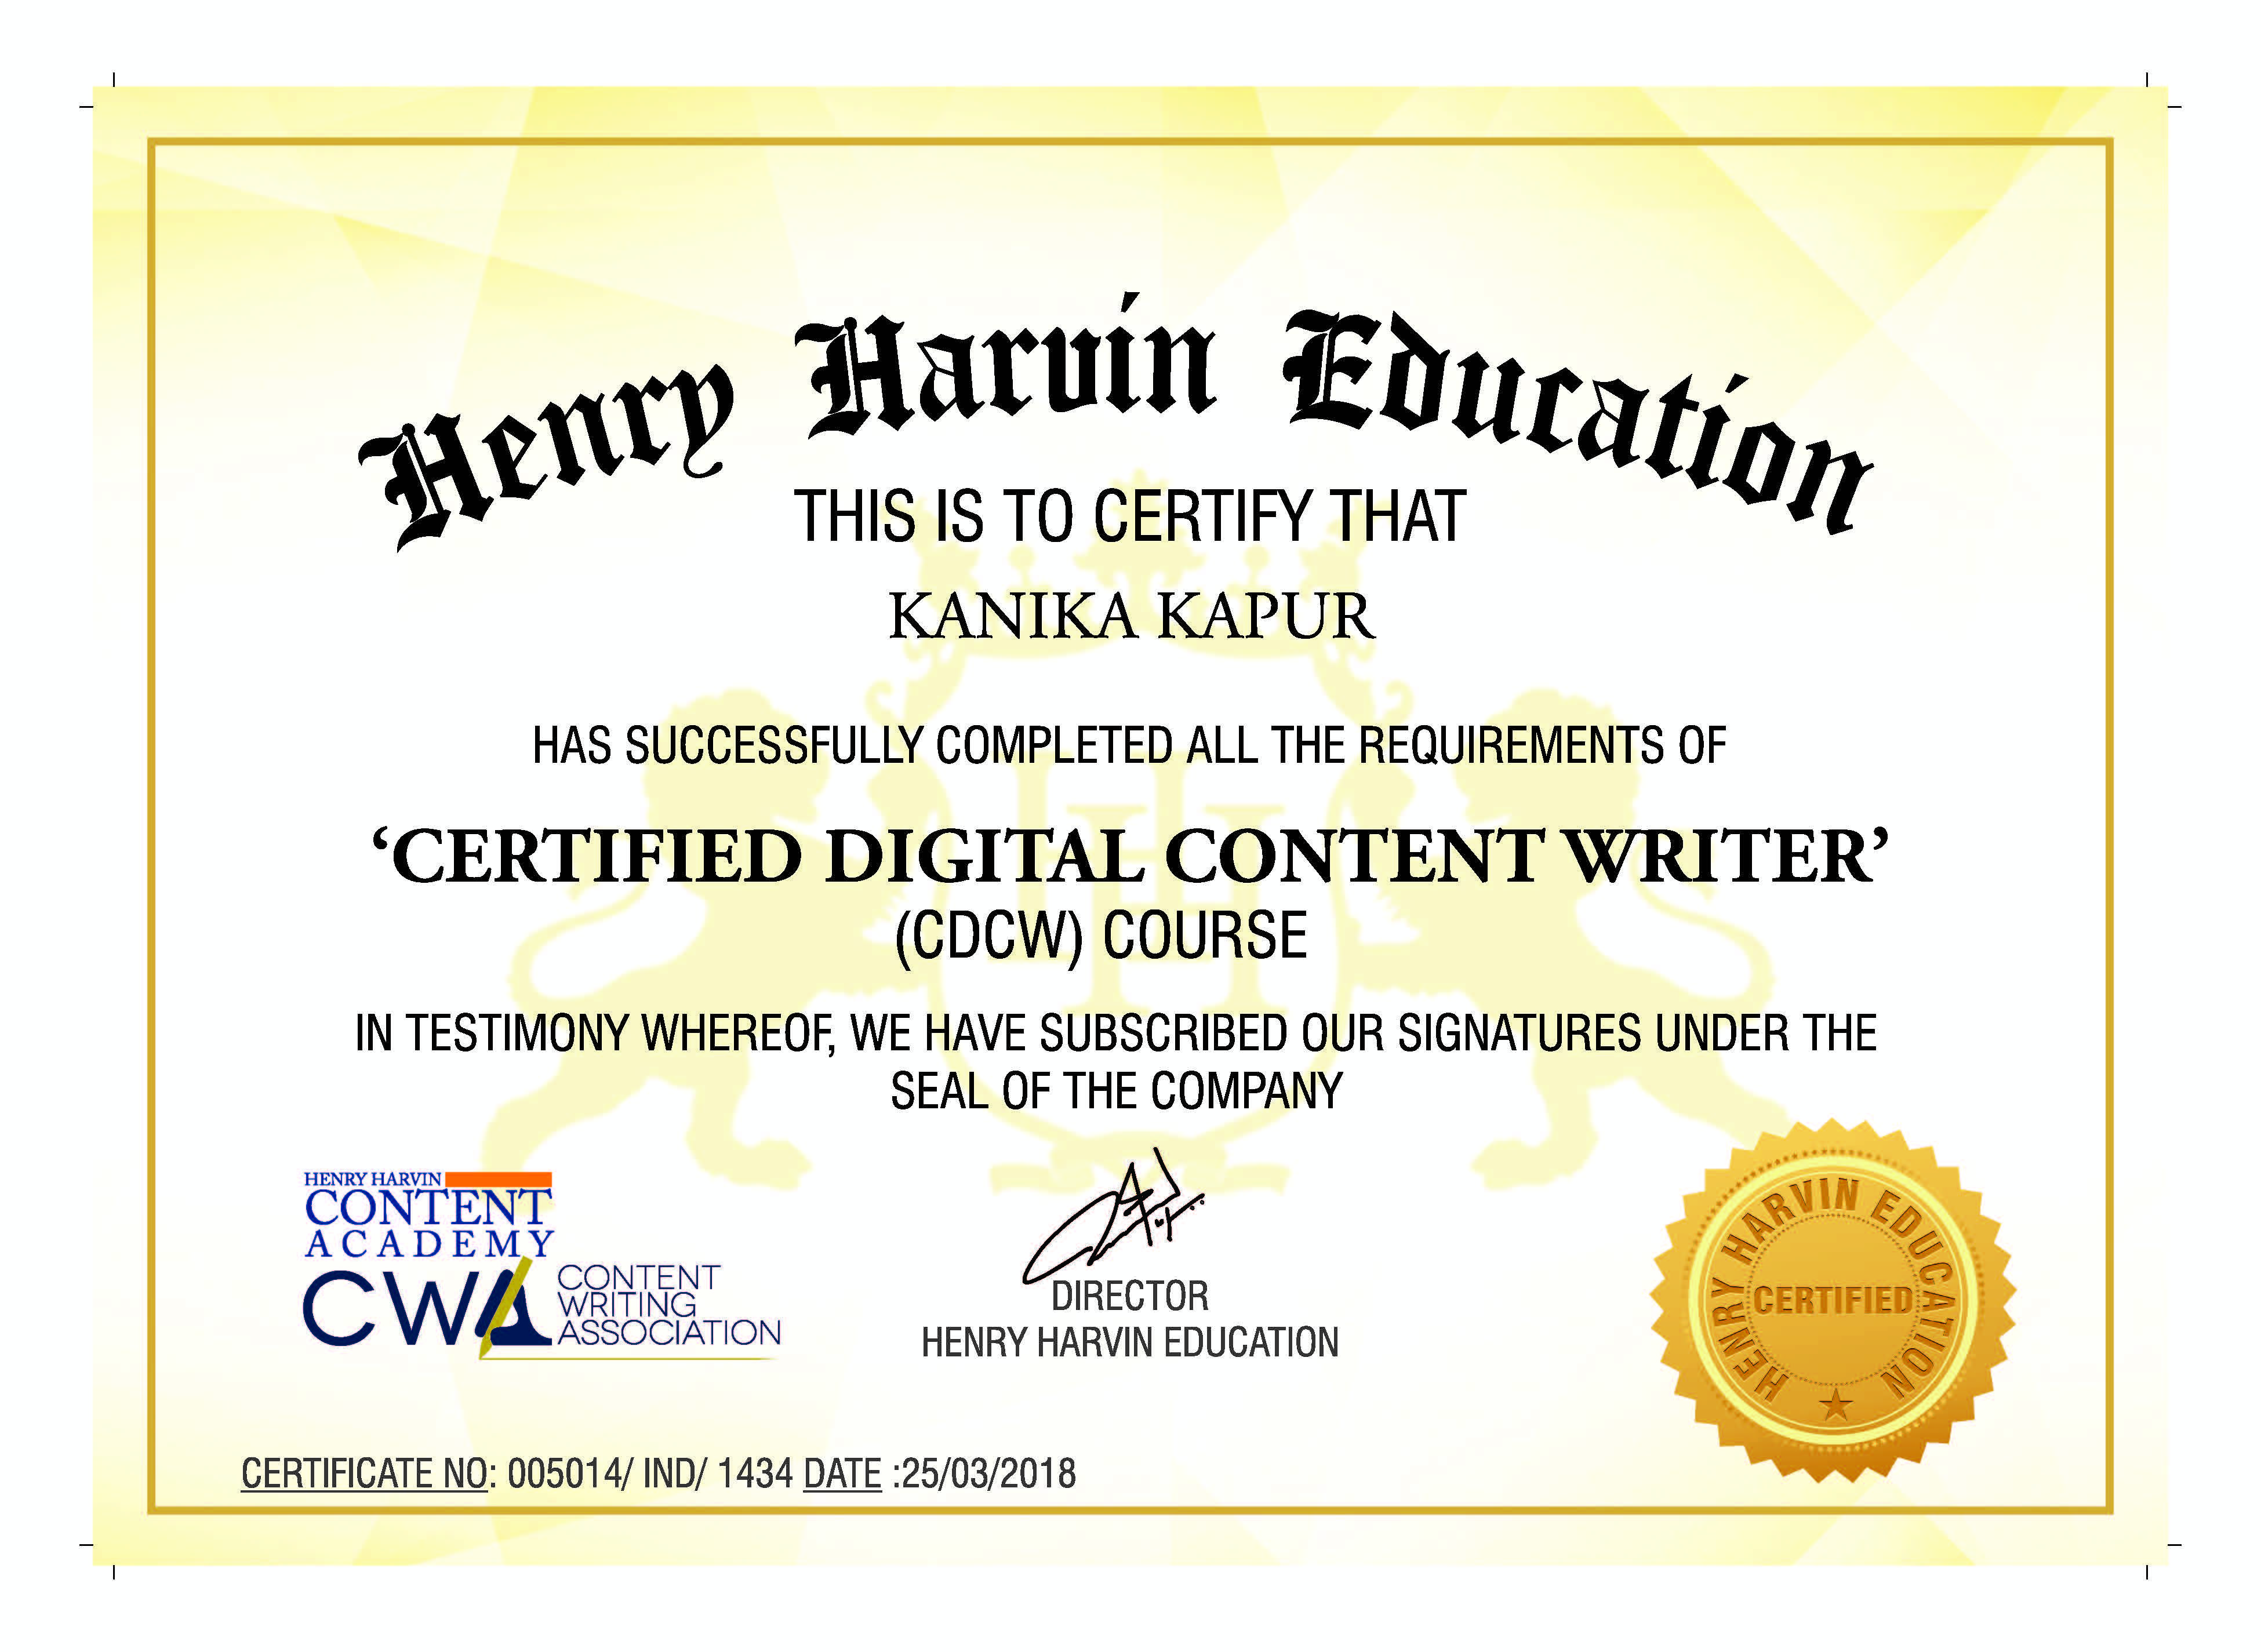 Pin By Henry Harvin Education On Certified Digital Content Writer